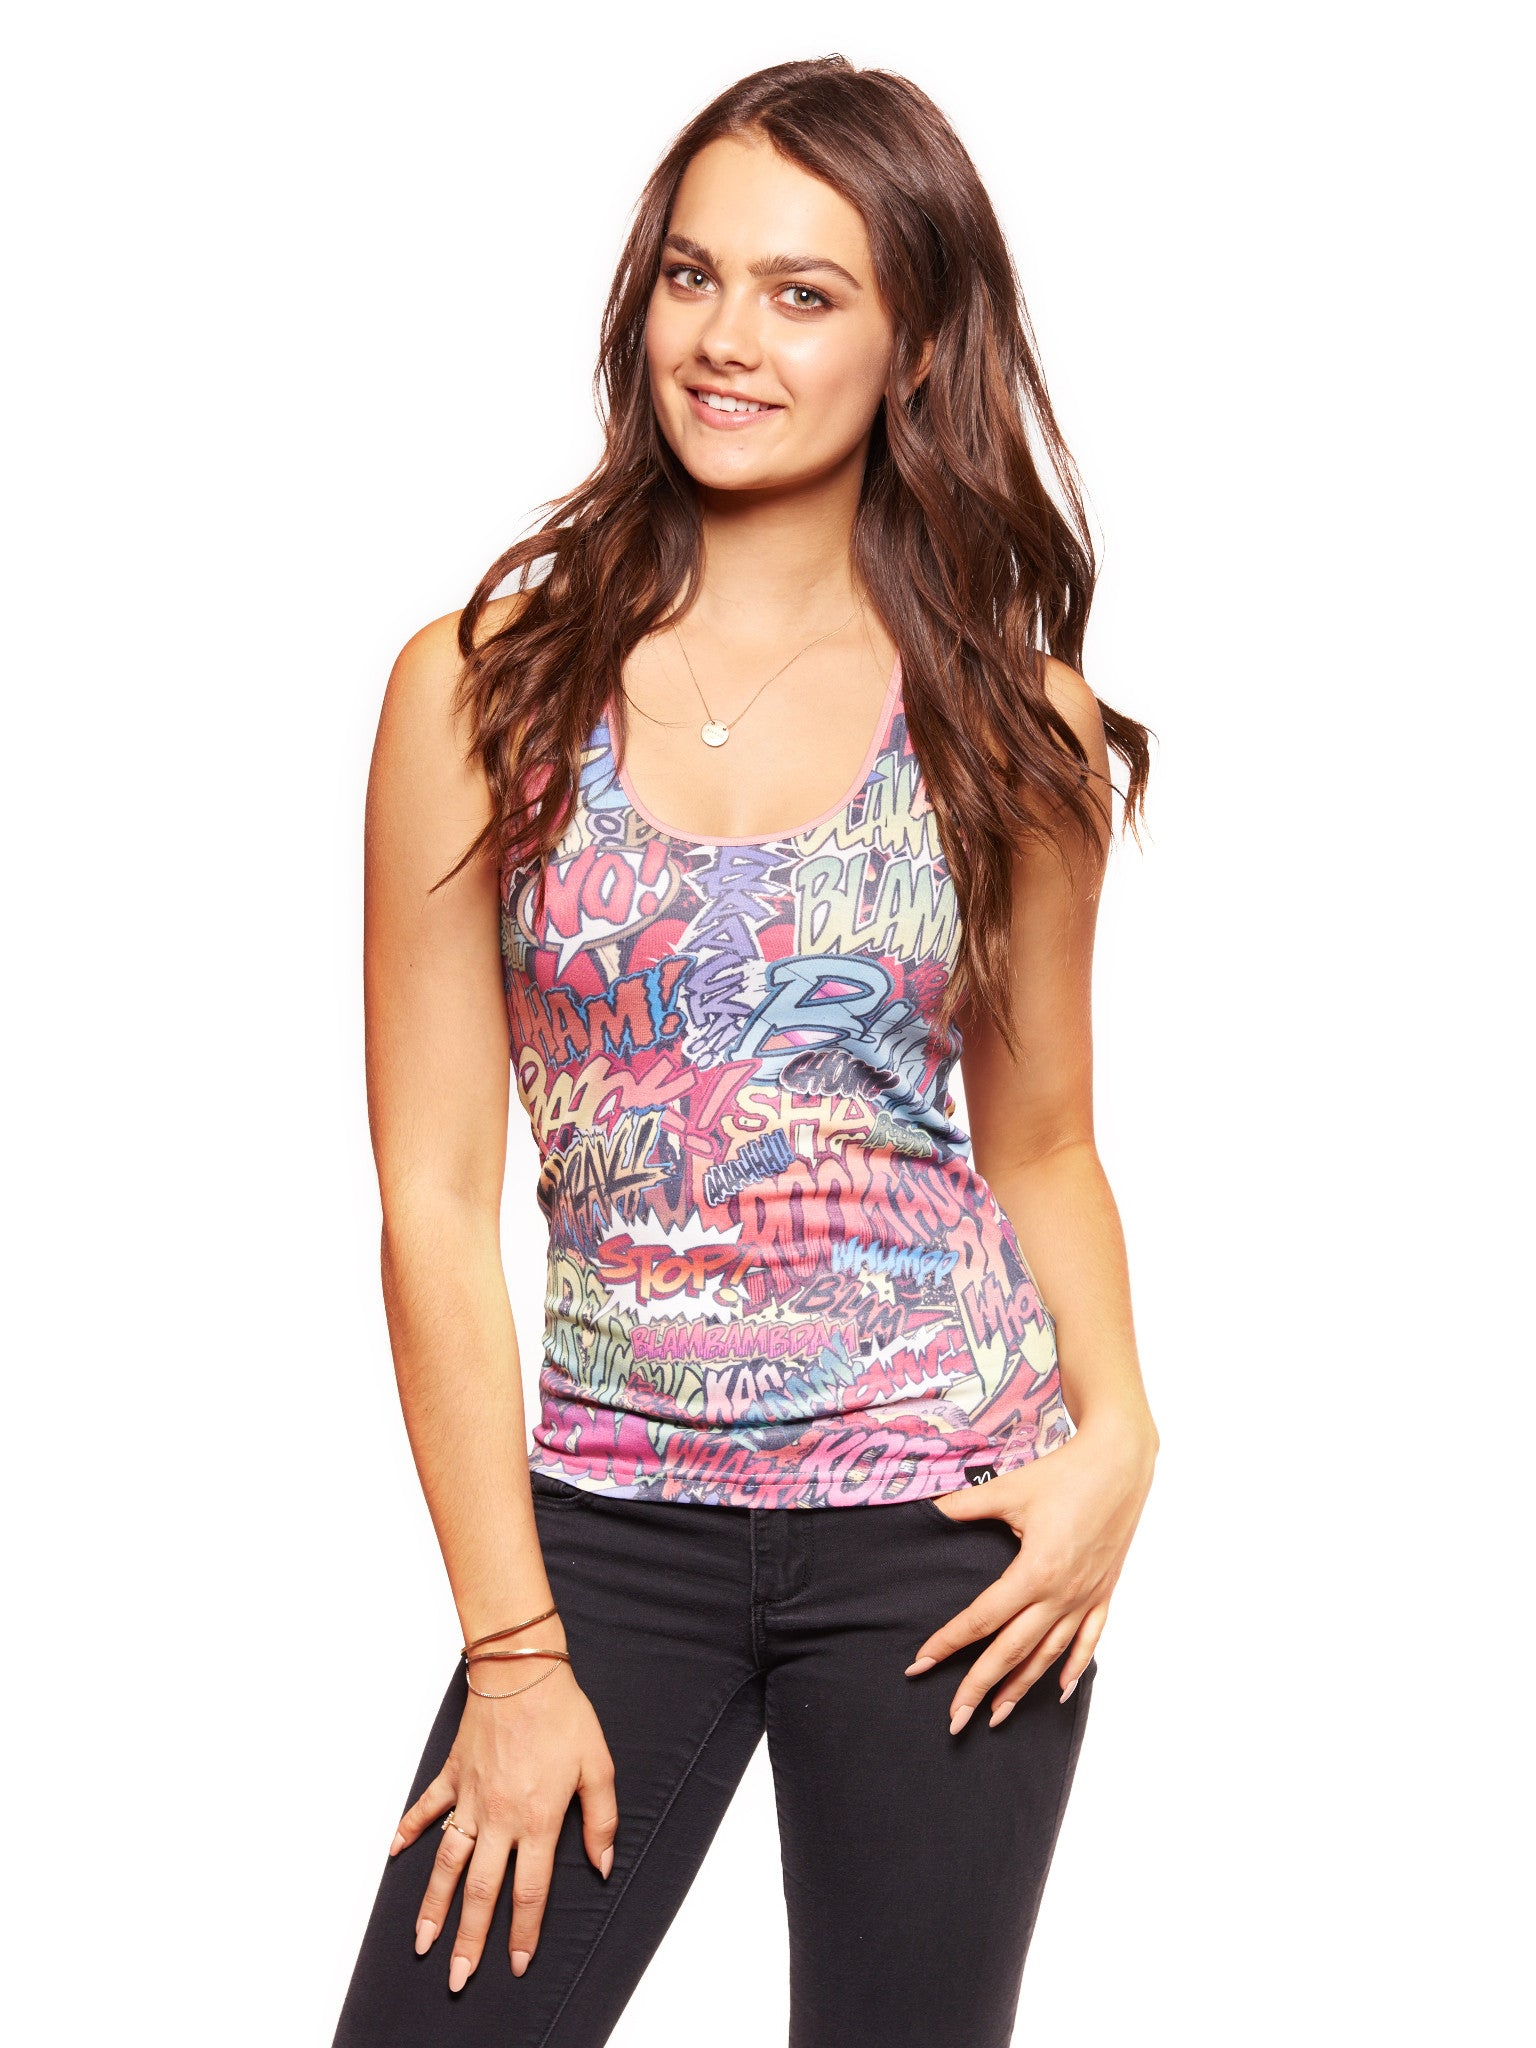 Action Packed Women's Trinity Tank - Nuvango Gallery & Goods - 1